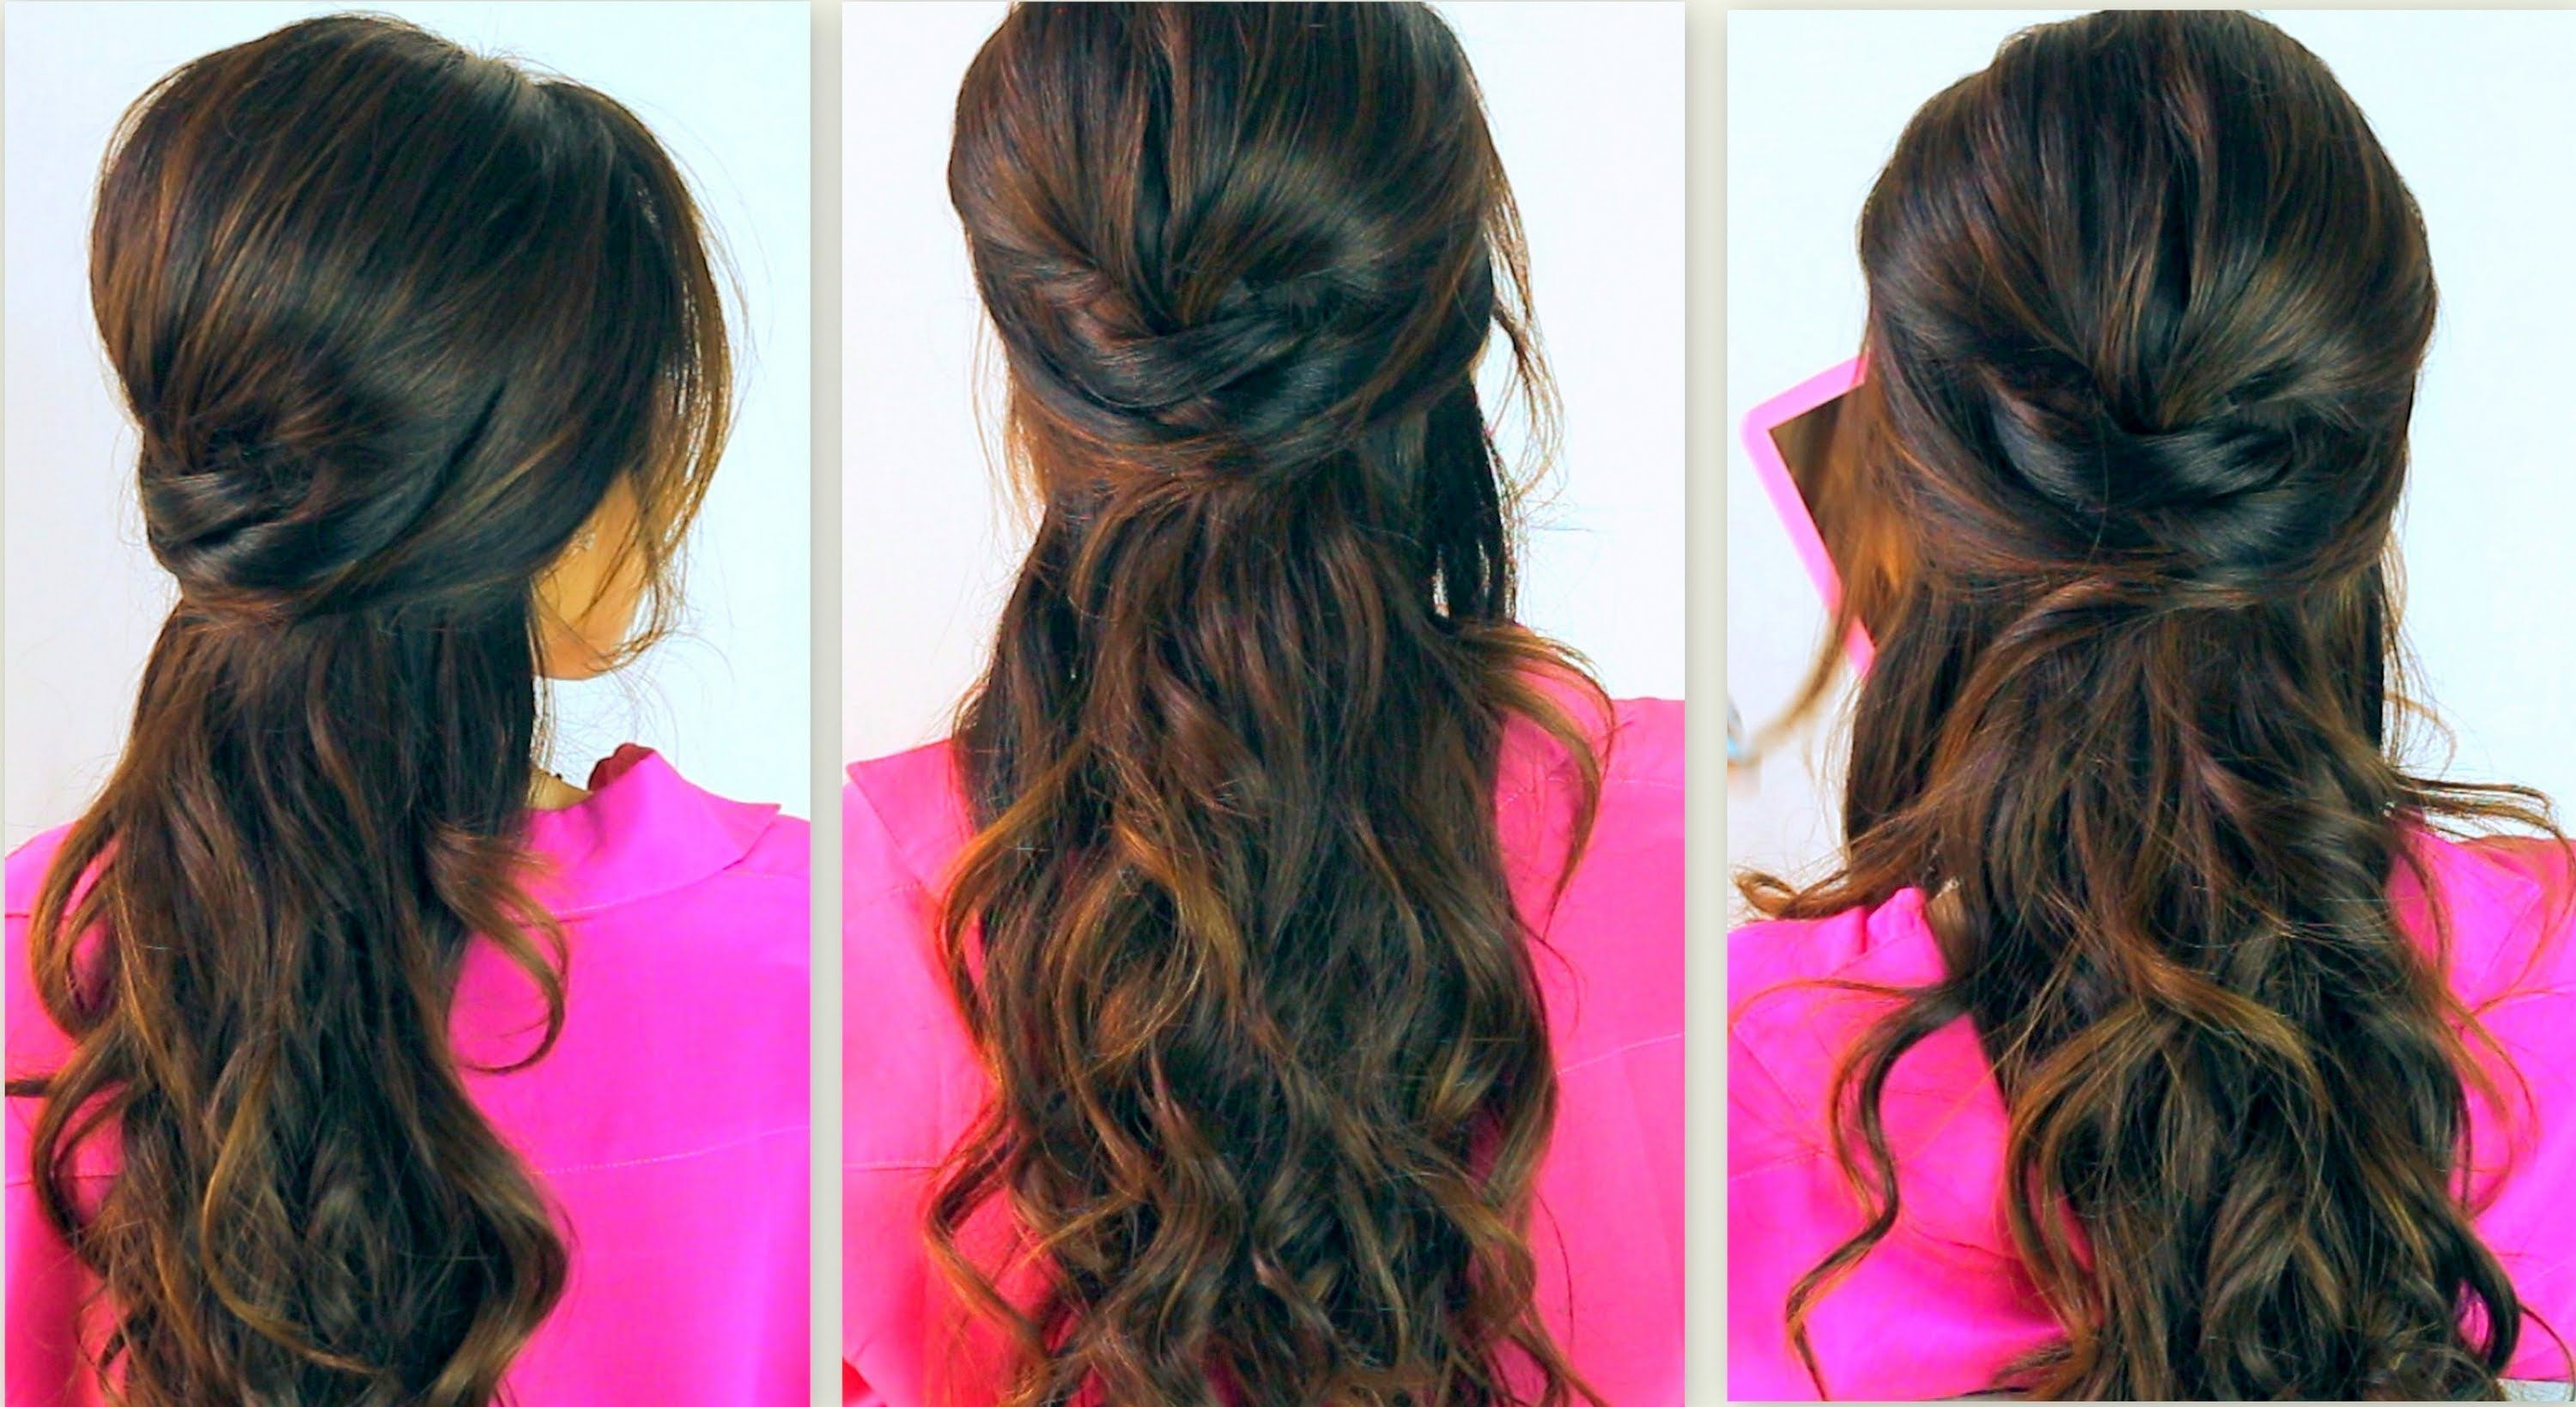 Cute backtoschool hairstyles everyday poofy curly halfup